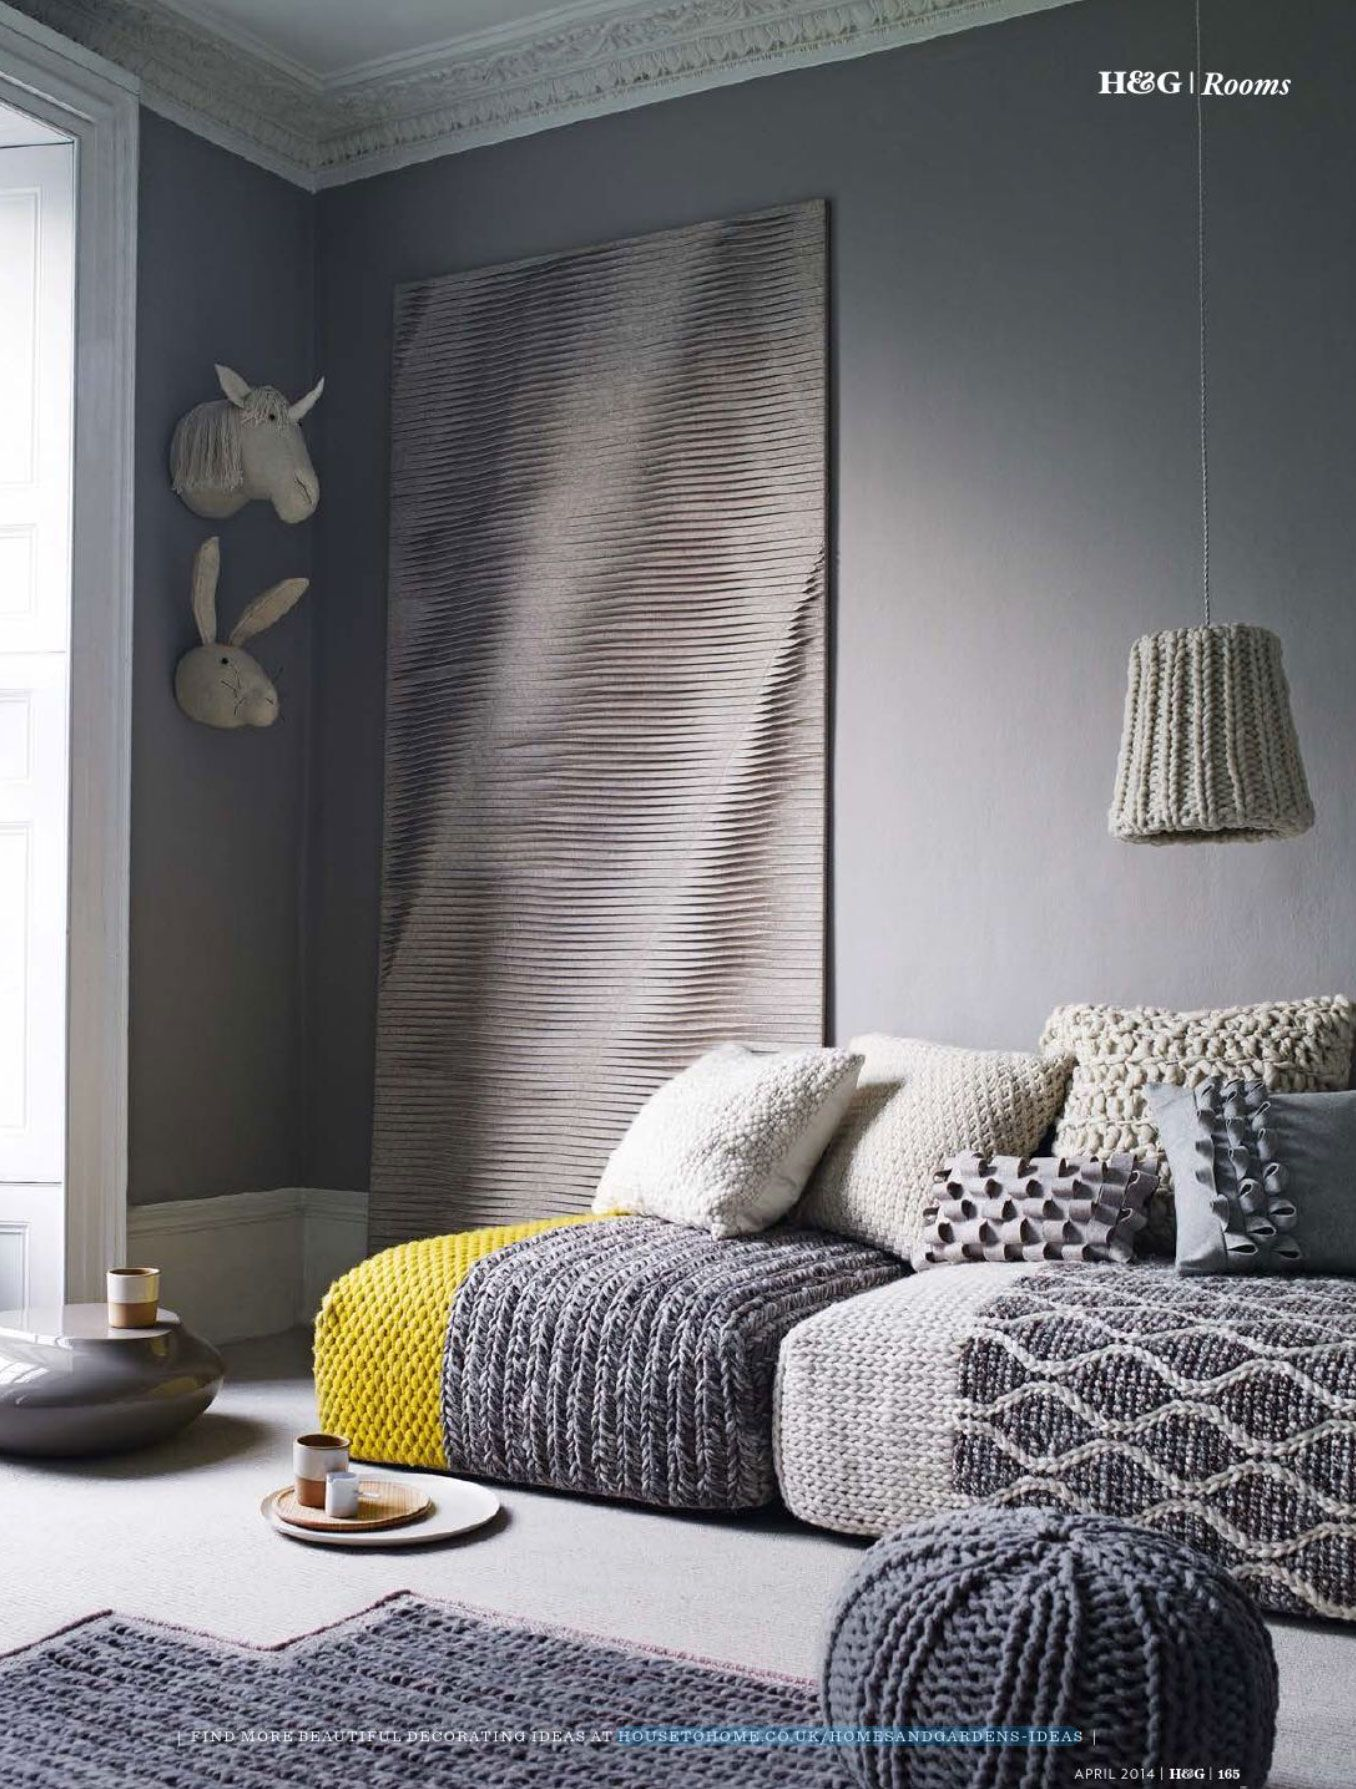 Celebrate Wool Week With These Wonderful Ways To Decorate With Wool, As  Chosenu2026